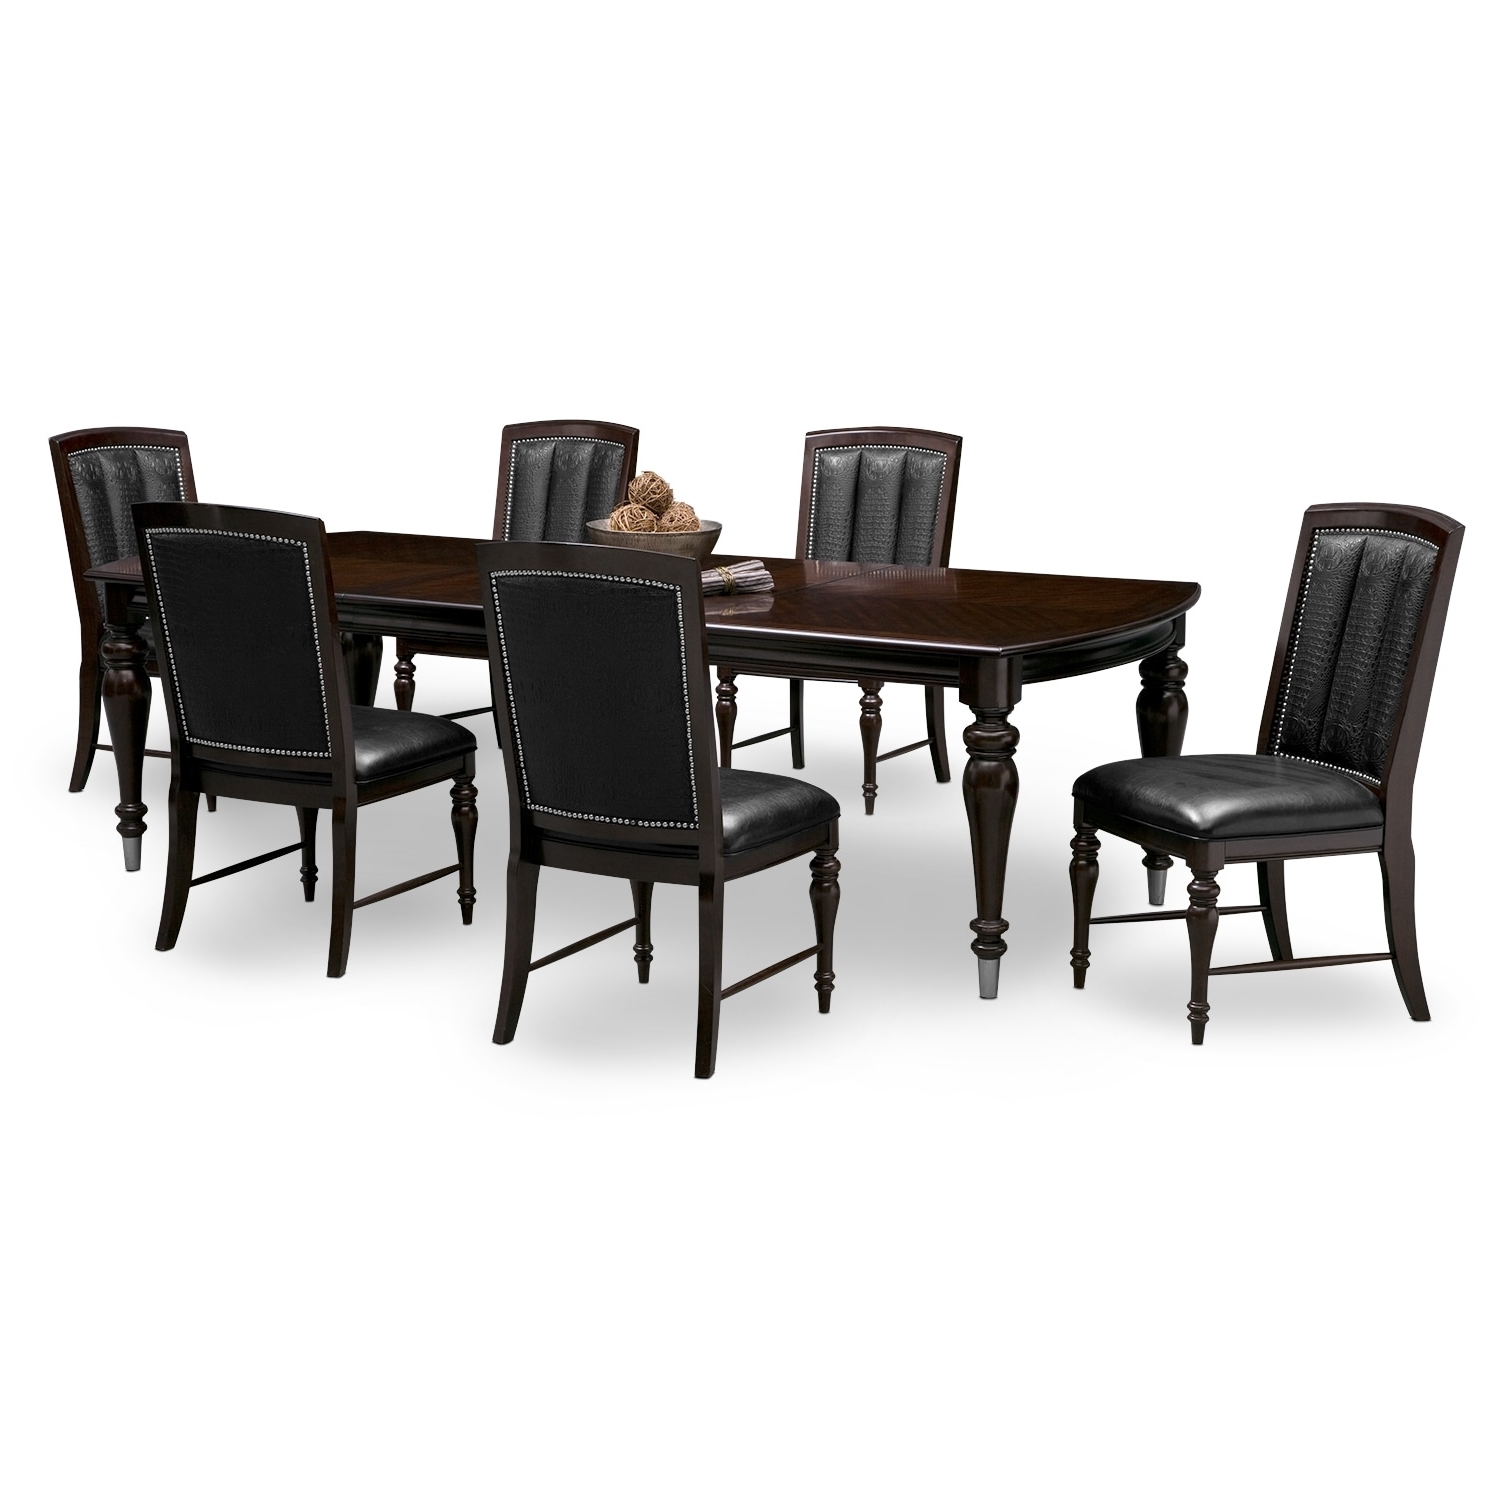 Fashionable Market 6 Piece Dining Sets With Host And Side Chairs Throughout Dining Room Furniture (View 8 of 25)